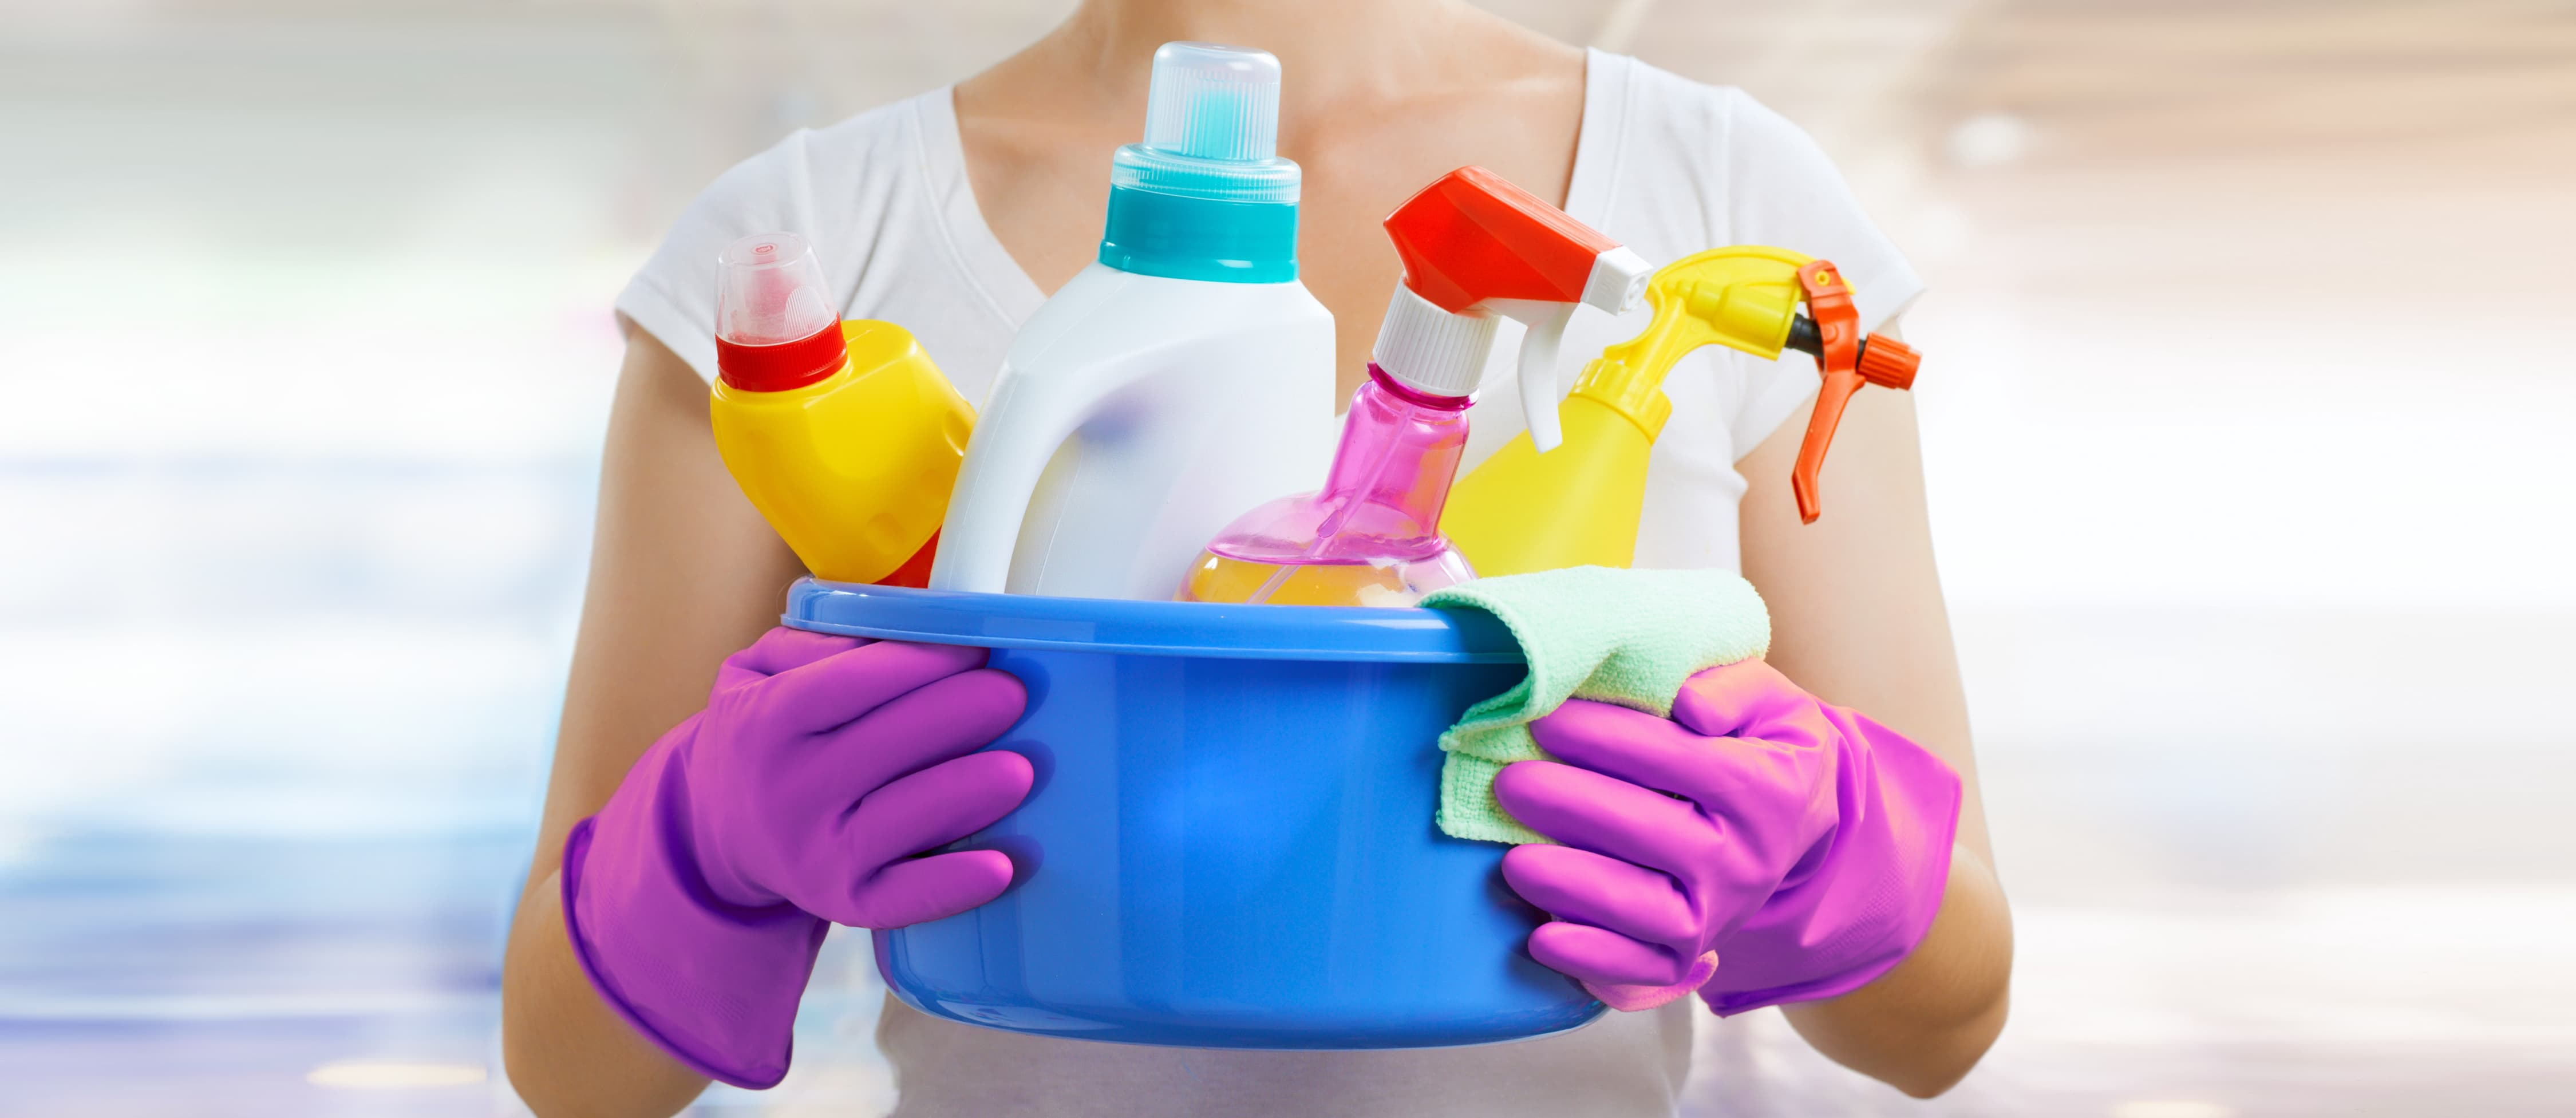 A Gleem Staff member holding cleaning supplies.